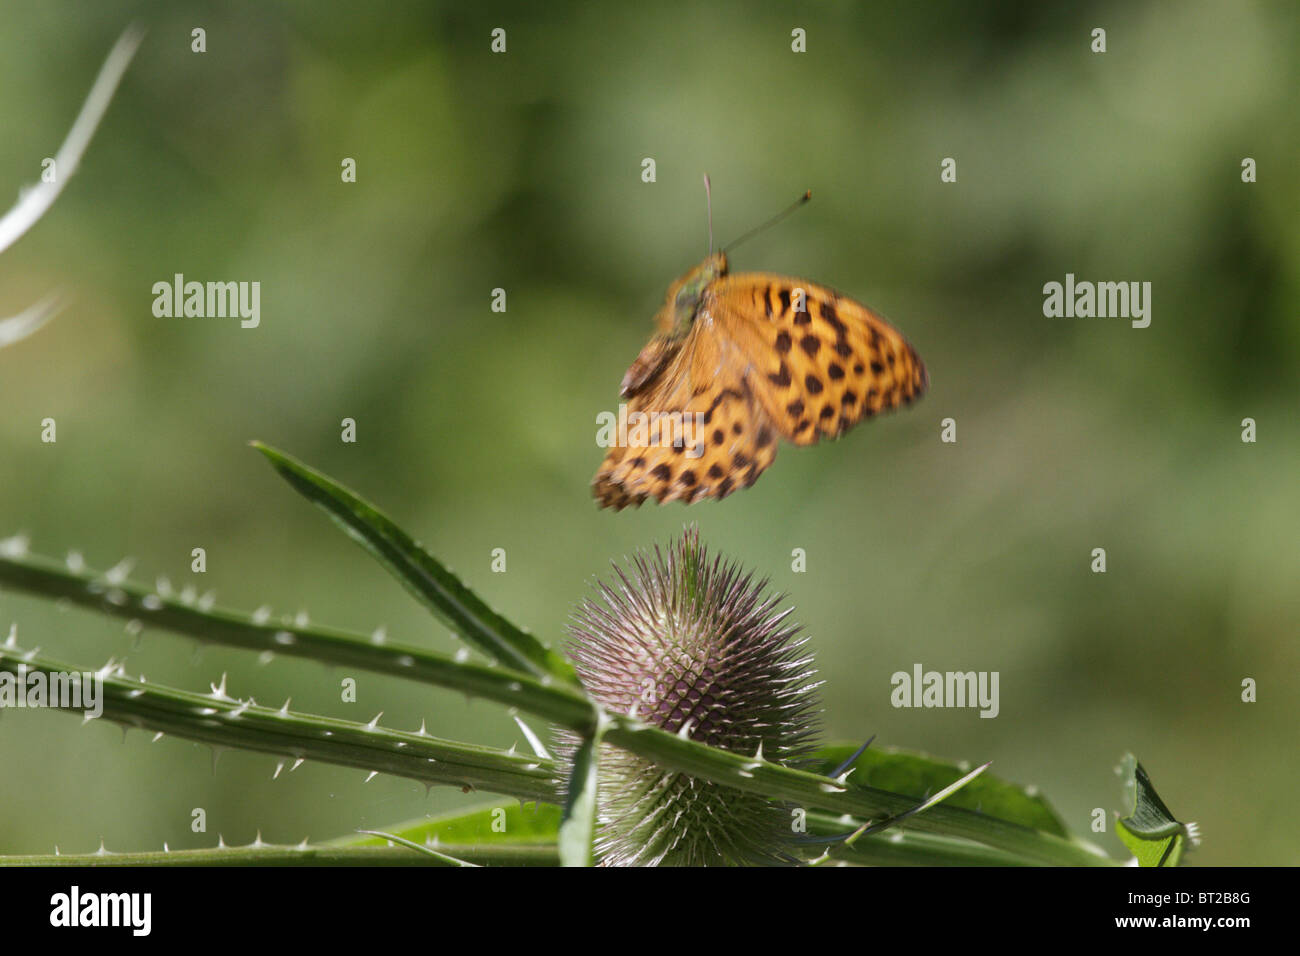 Argynnis paphia, Silver-washed Fritillary. The butterfly is approaching a thistle to feed. - Stock Image